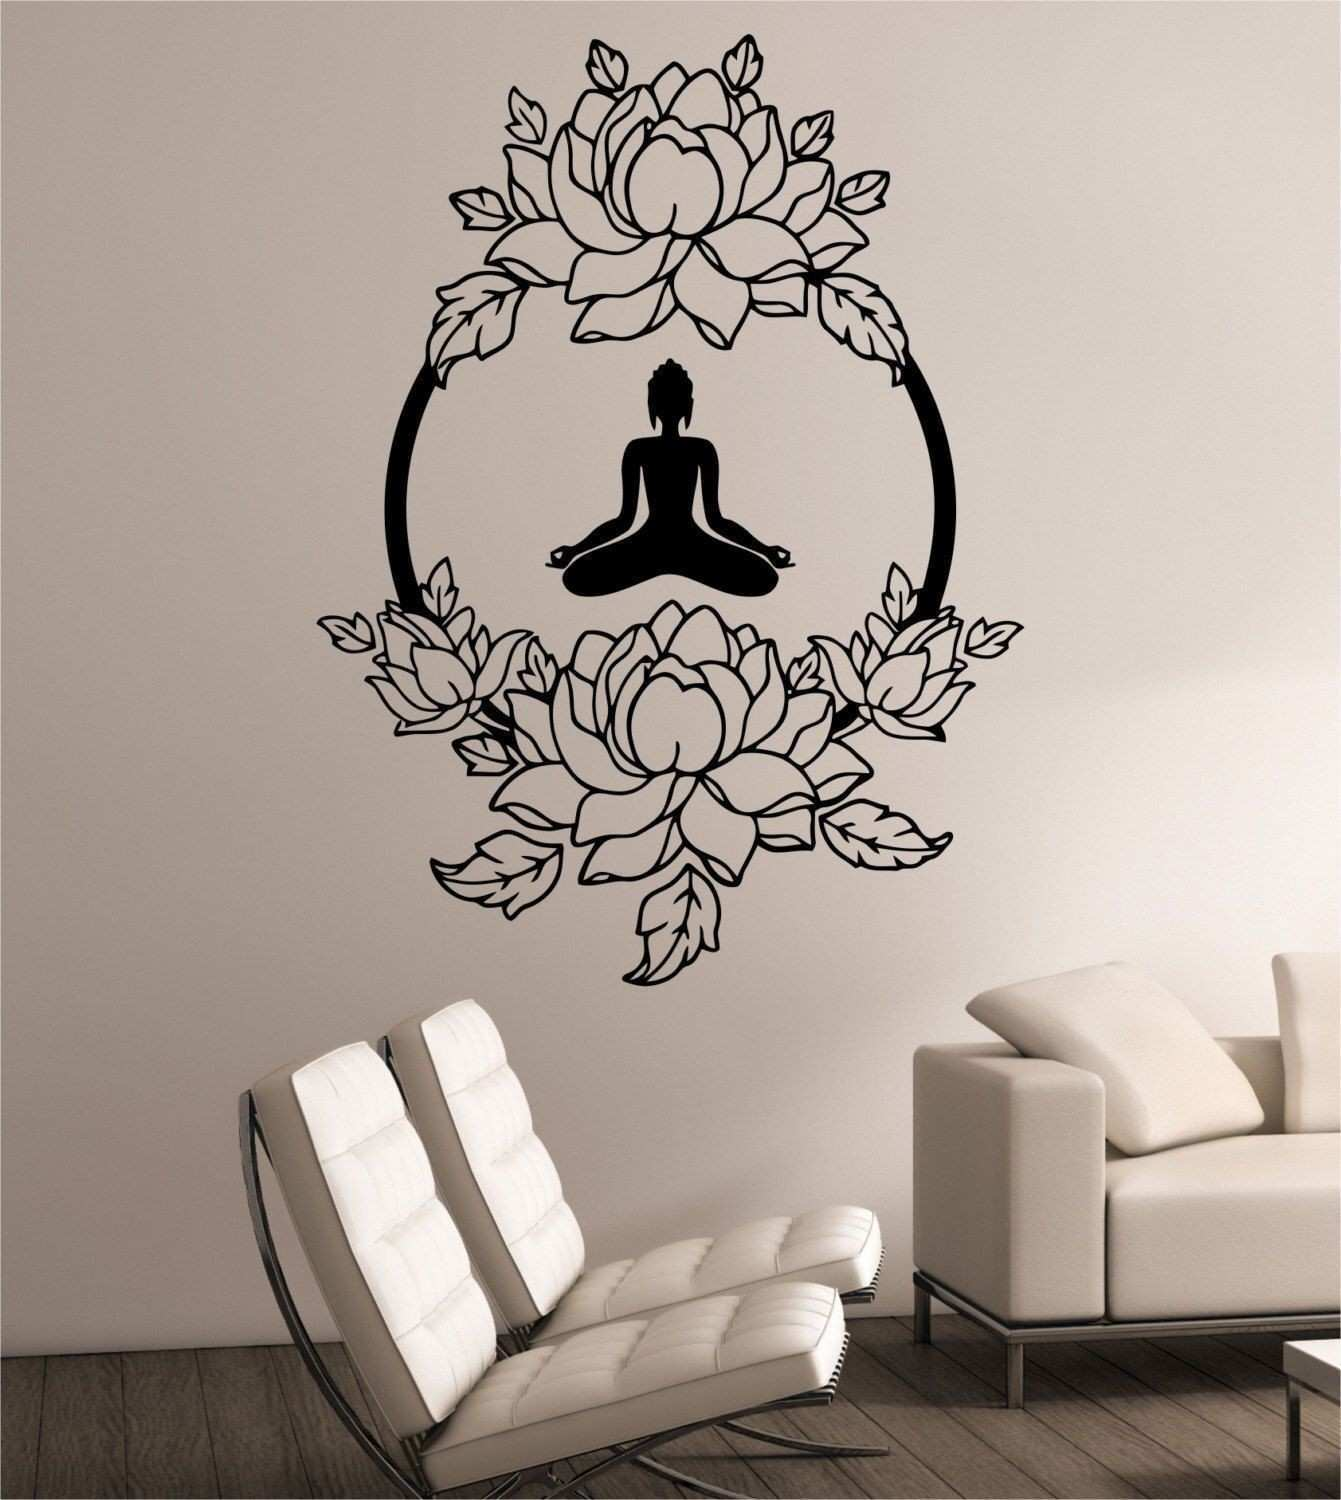 Diy Wall Prints Lovely Wall Decal Luxury 1 Kirkland Wall Decor Home